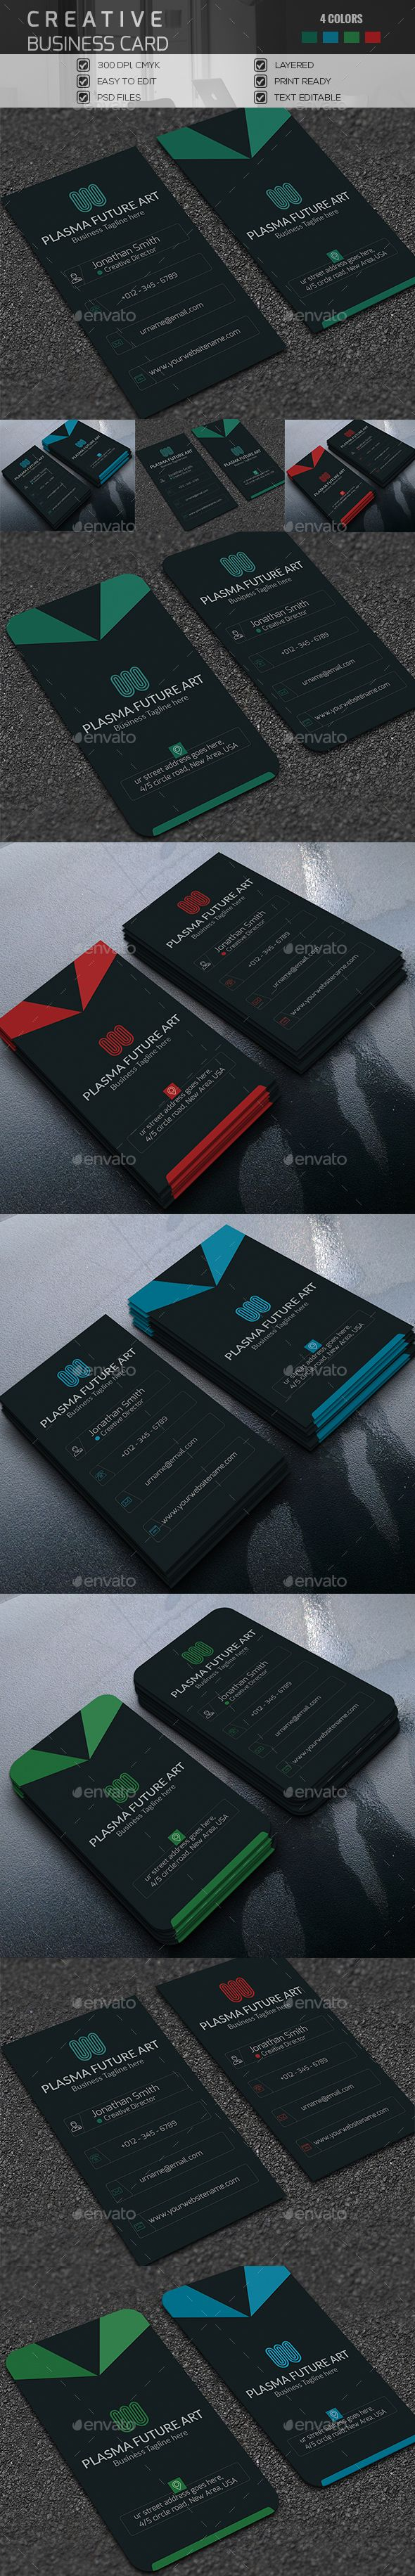 Creative Business Card | Business cards, Business and Graphics